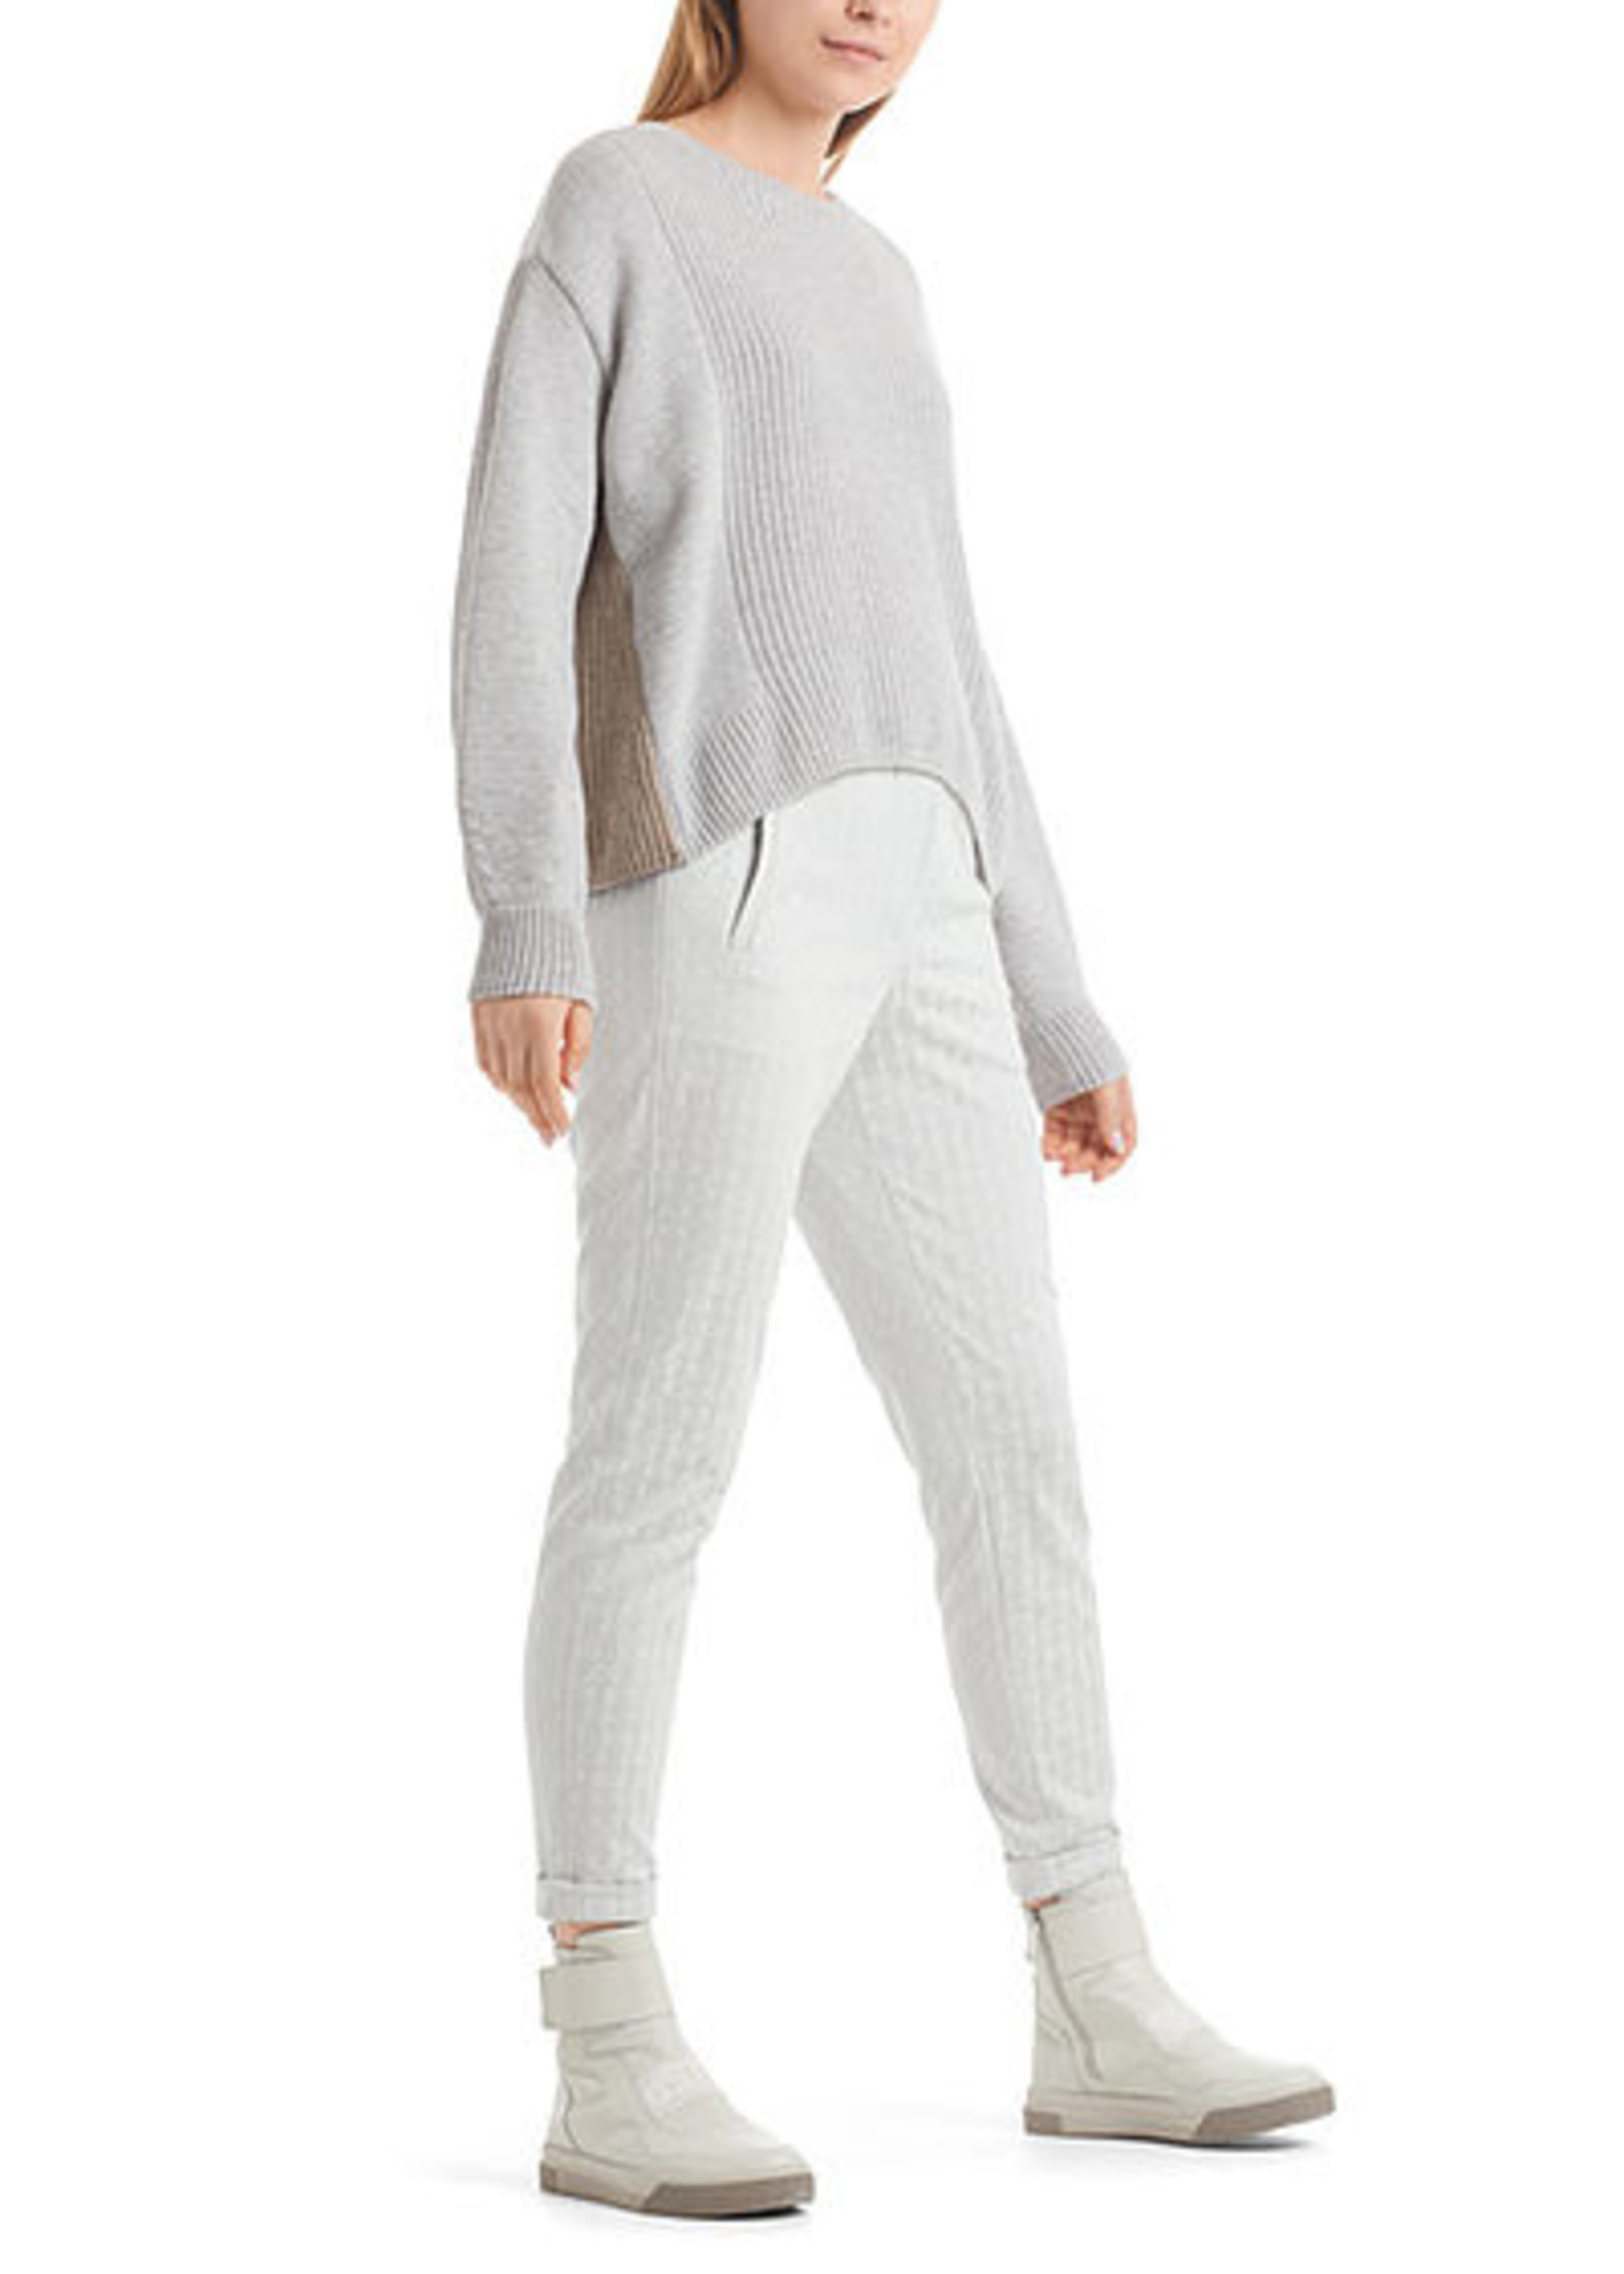 Marccain Sports Sweater RS 41.17 M06 silver grey